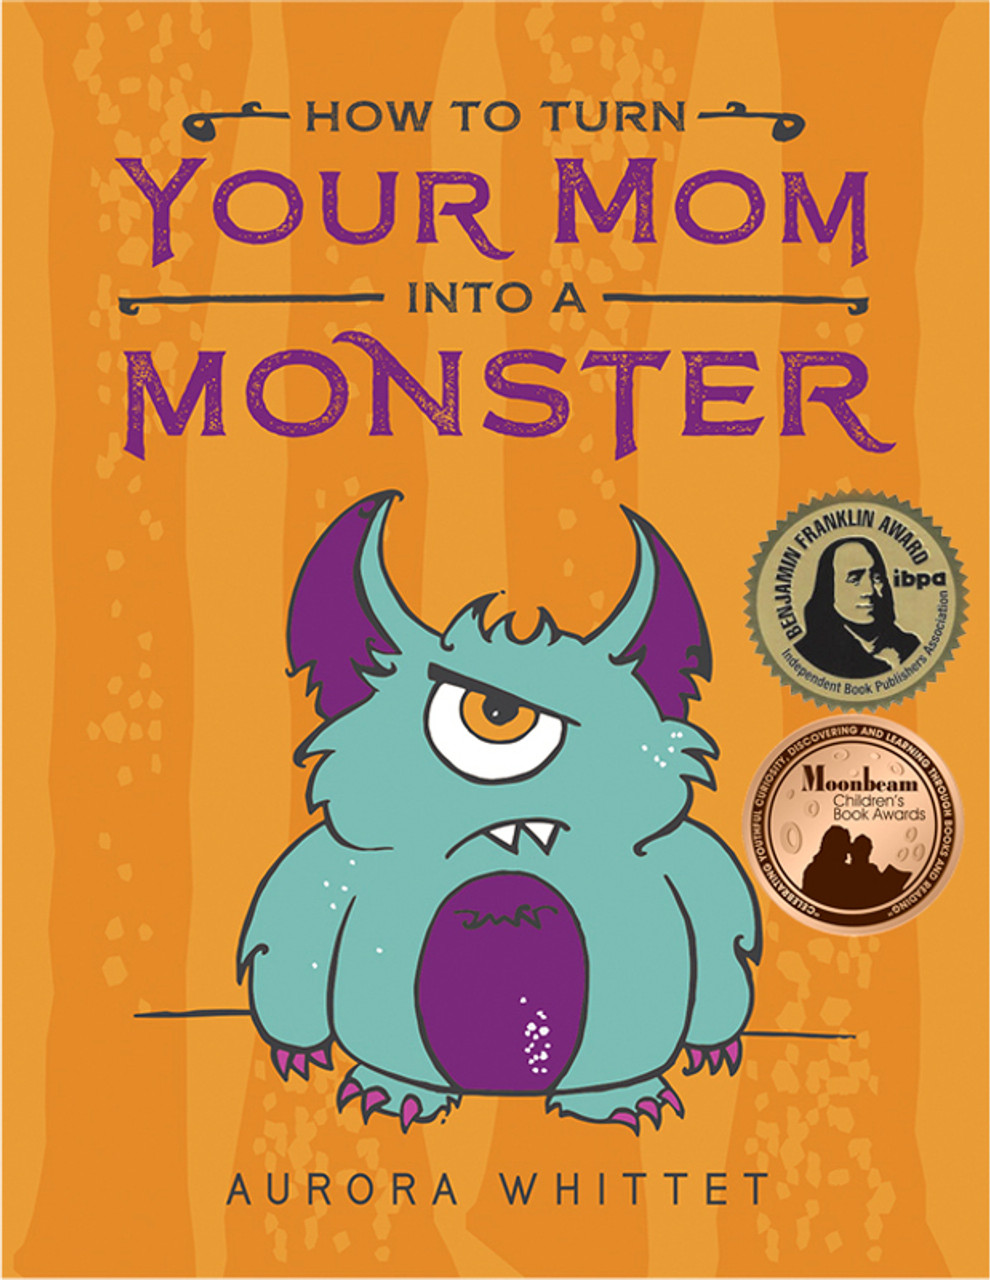 How to Turn Your Mom into a Monster